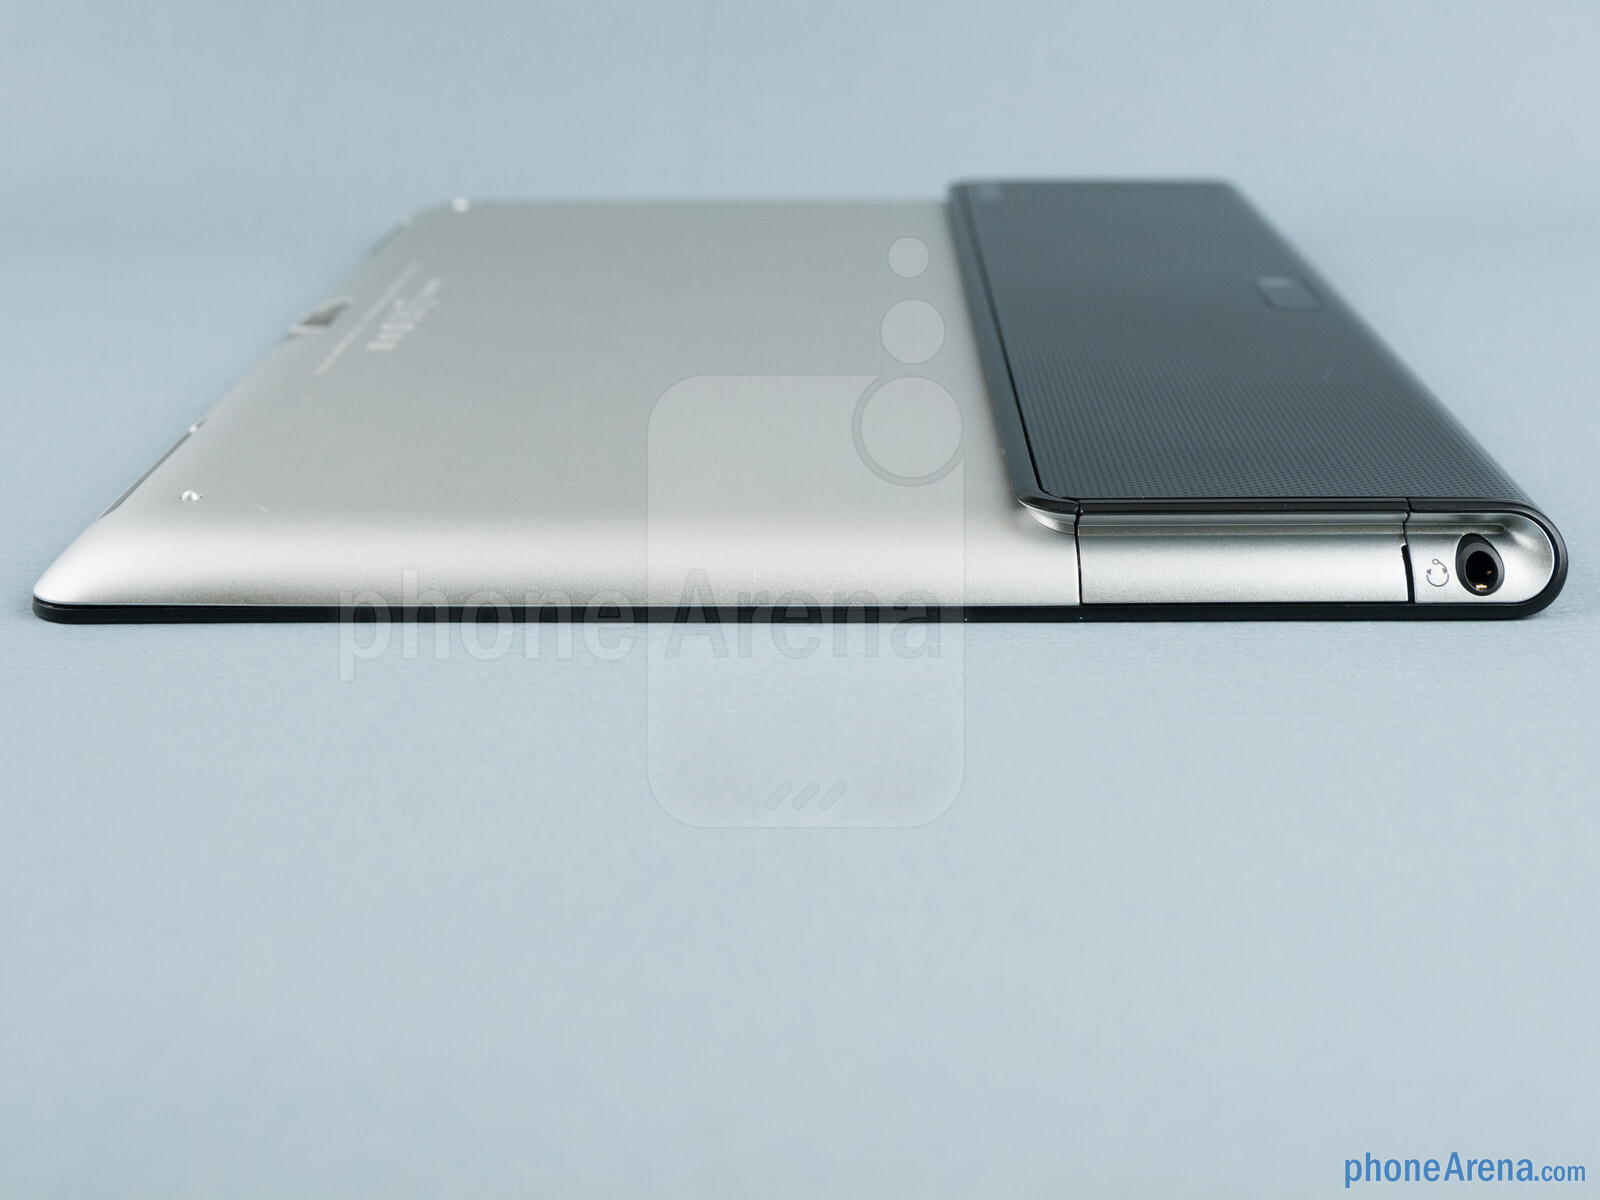 Sony Xperia Tablet S Review - PhoneArena